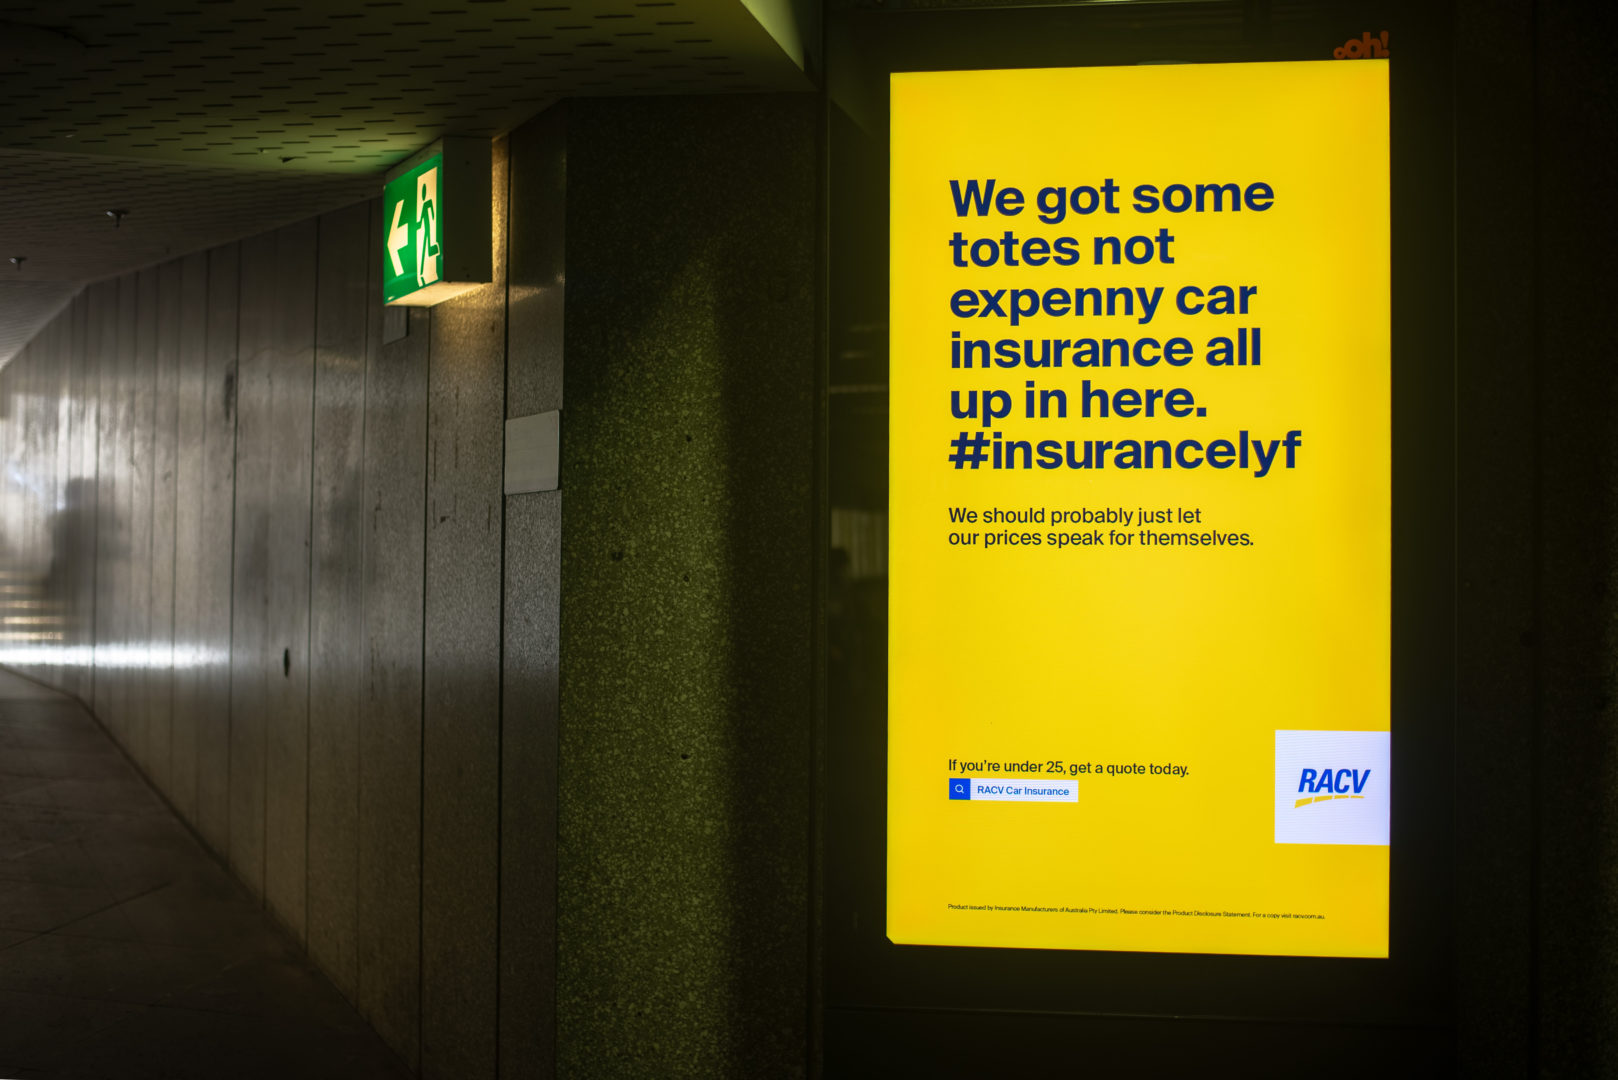 Racv Under 25 Car Insurance By All Means